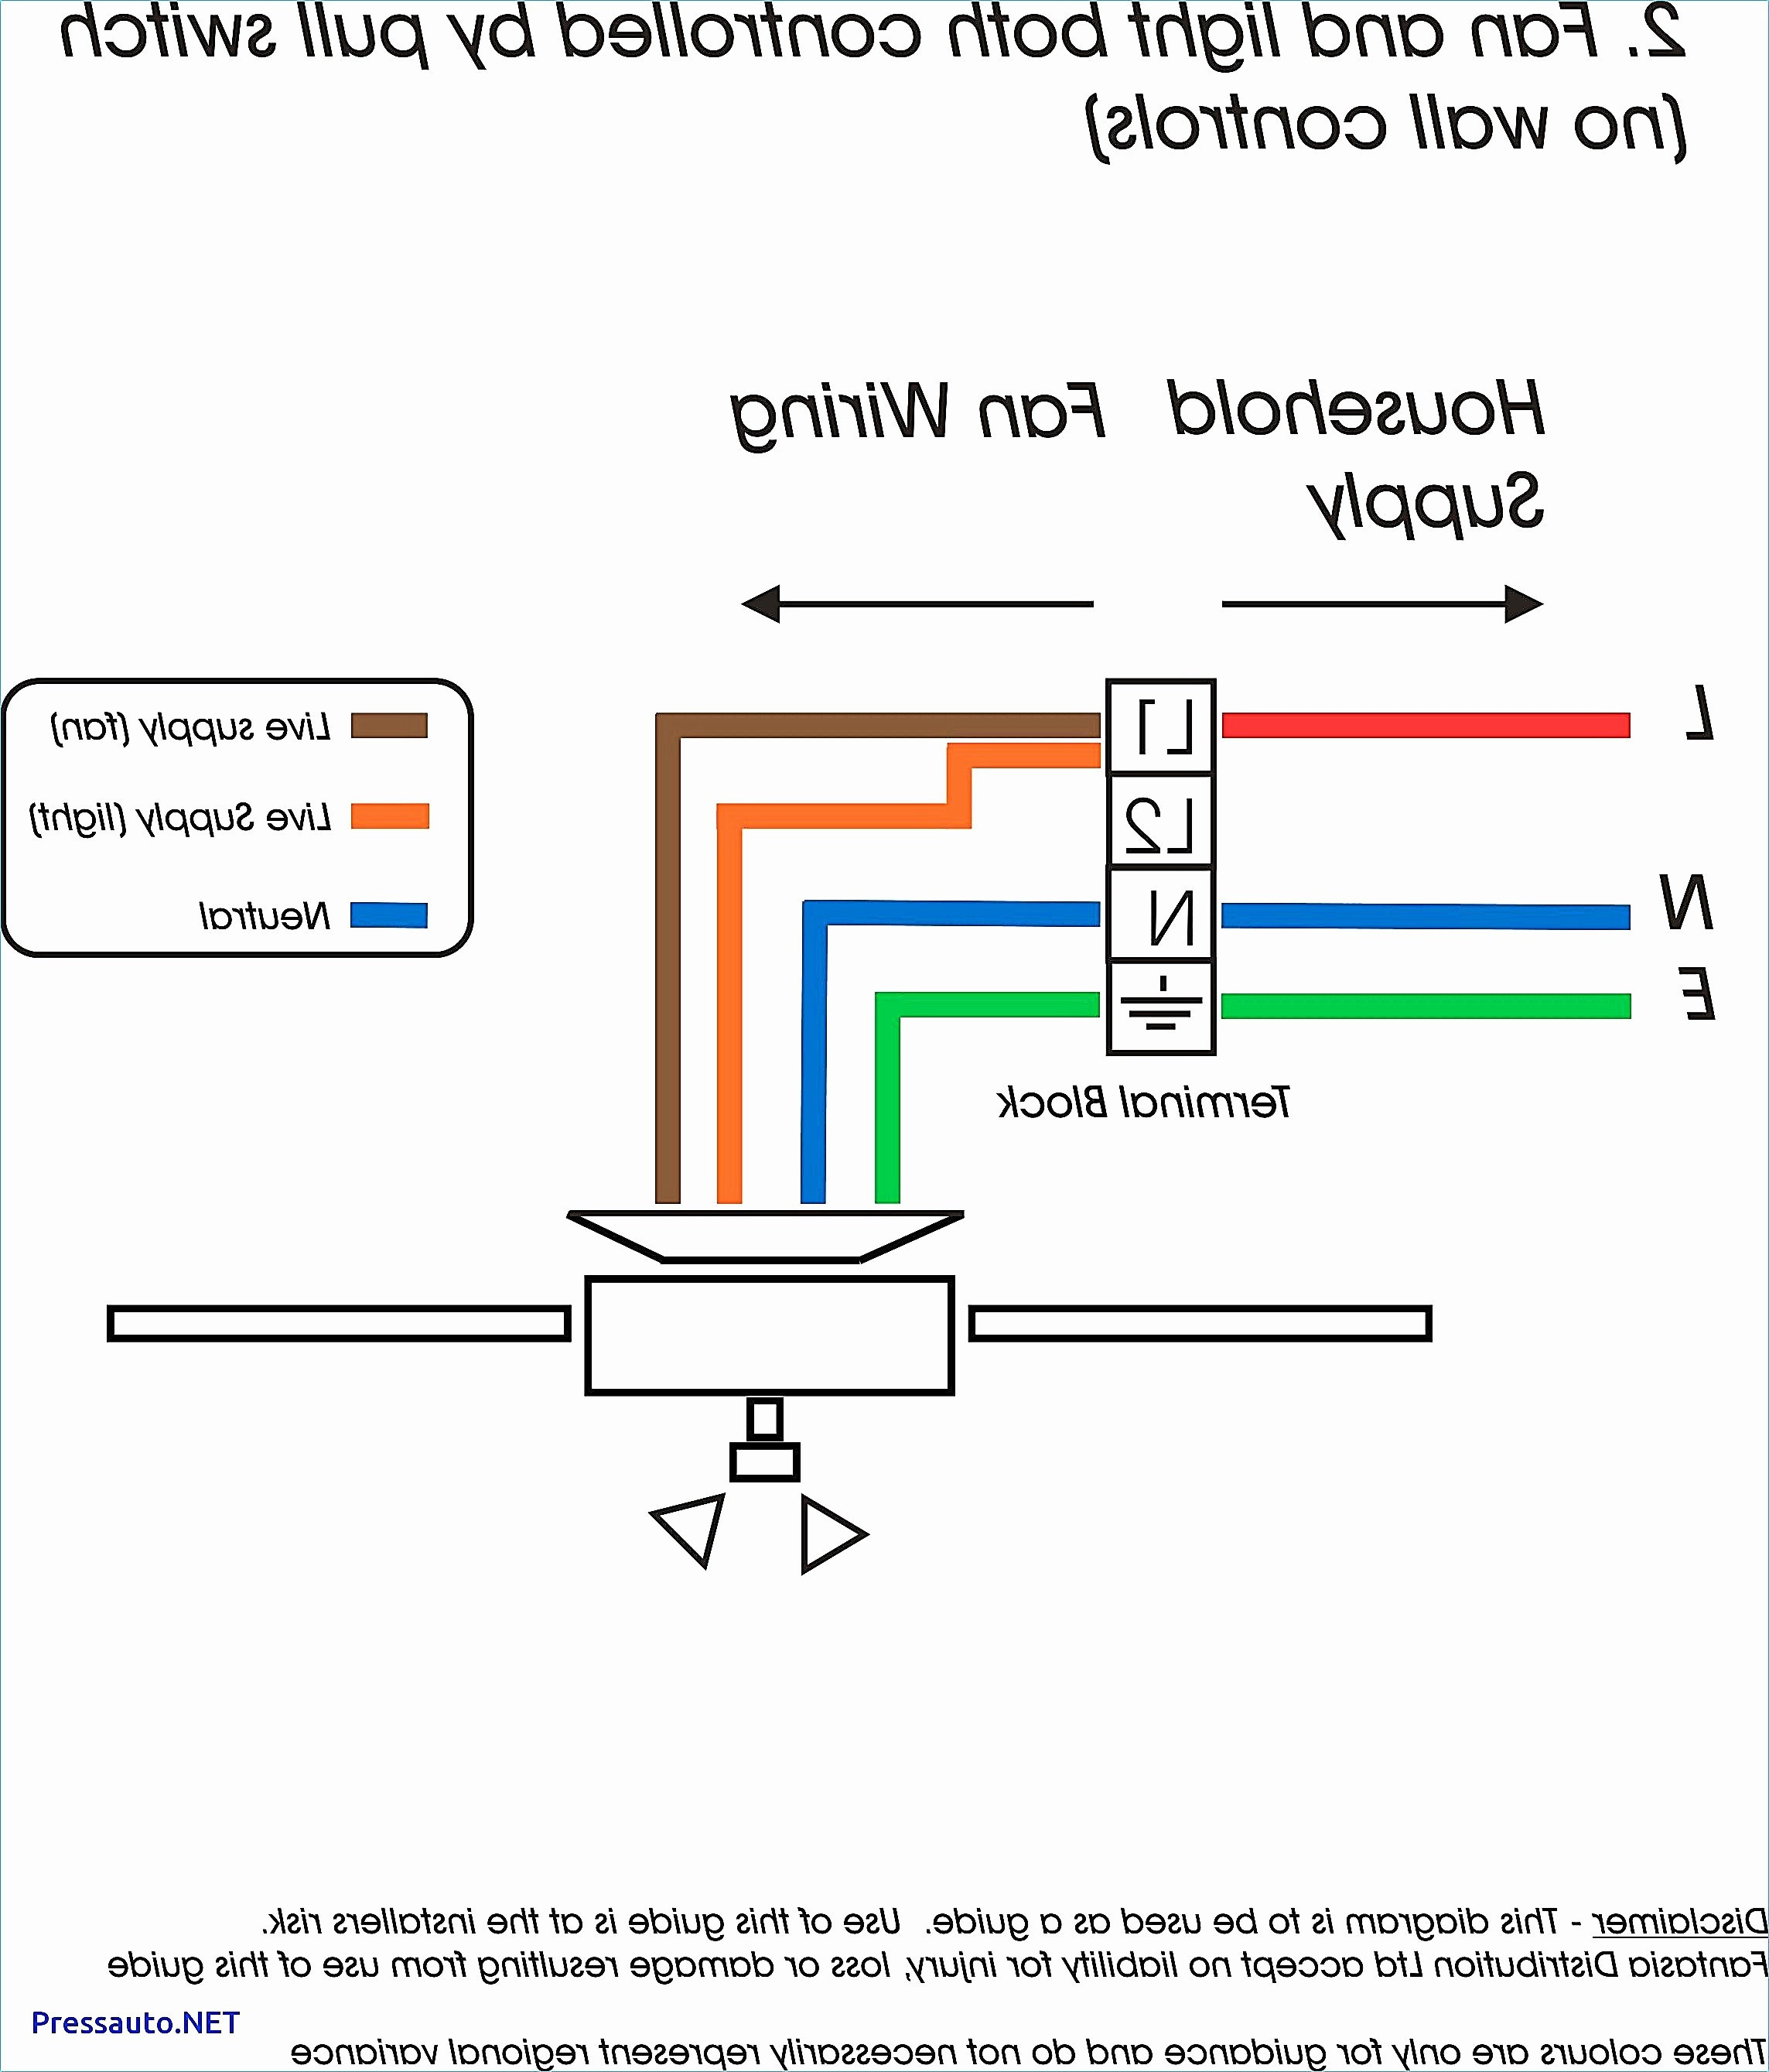 6 Pole Square Trailer Wiring Diagram Reference Wiring Diagram For A - 6 Pin Square Trailer Wiring Diagram